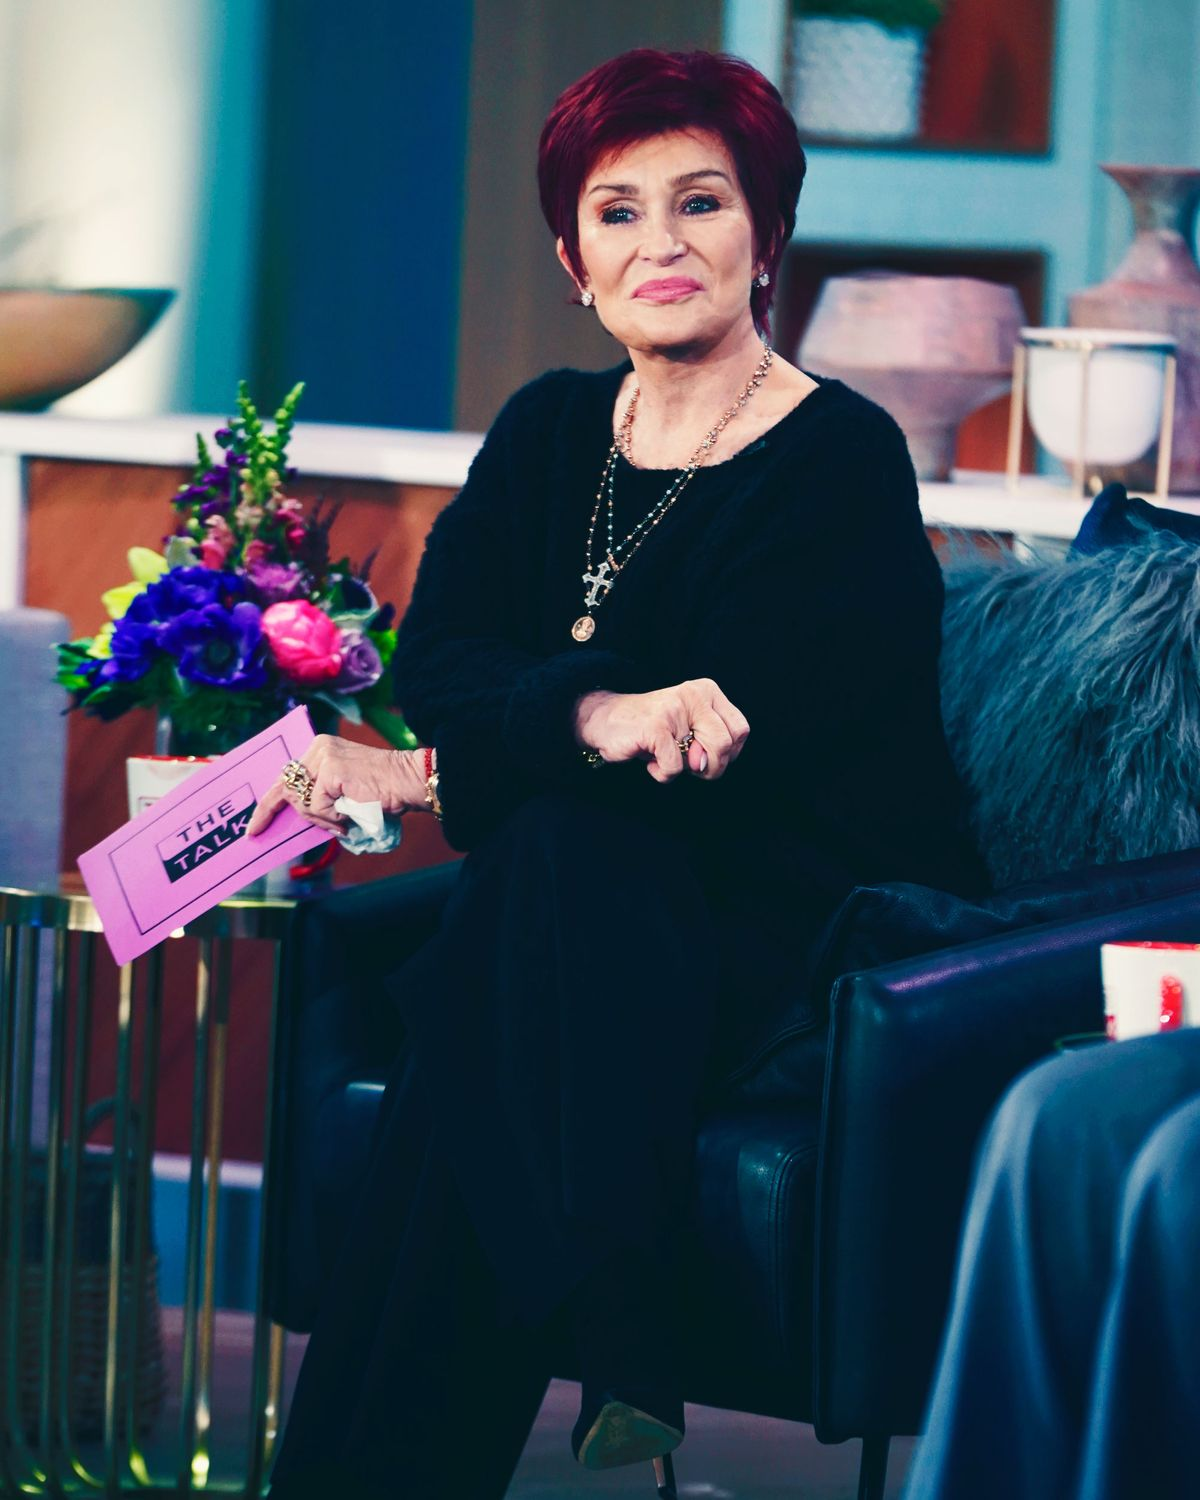 Sharon Osbourne increases security over death threats.